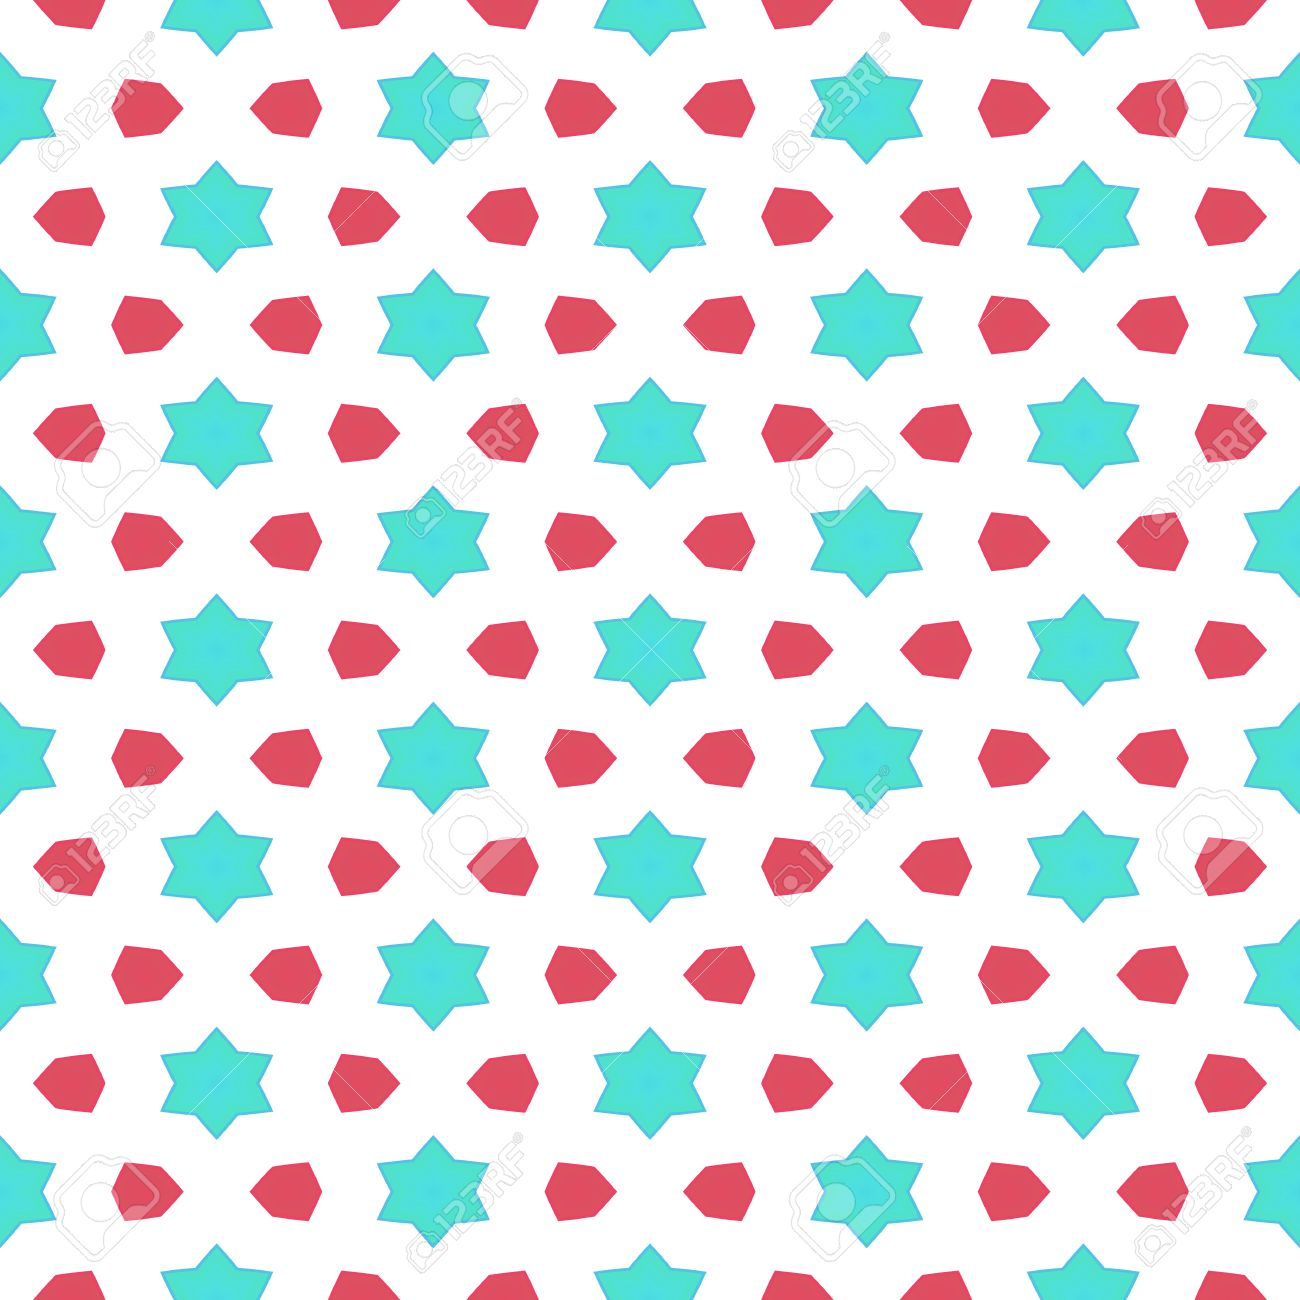 Colorful cute simple star kids texture wallpaper background stock colorful cute simple star kids texture wallpaper background stock photo 36800639 voltagebd Images